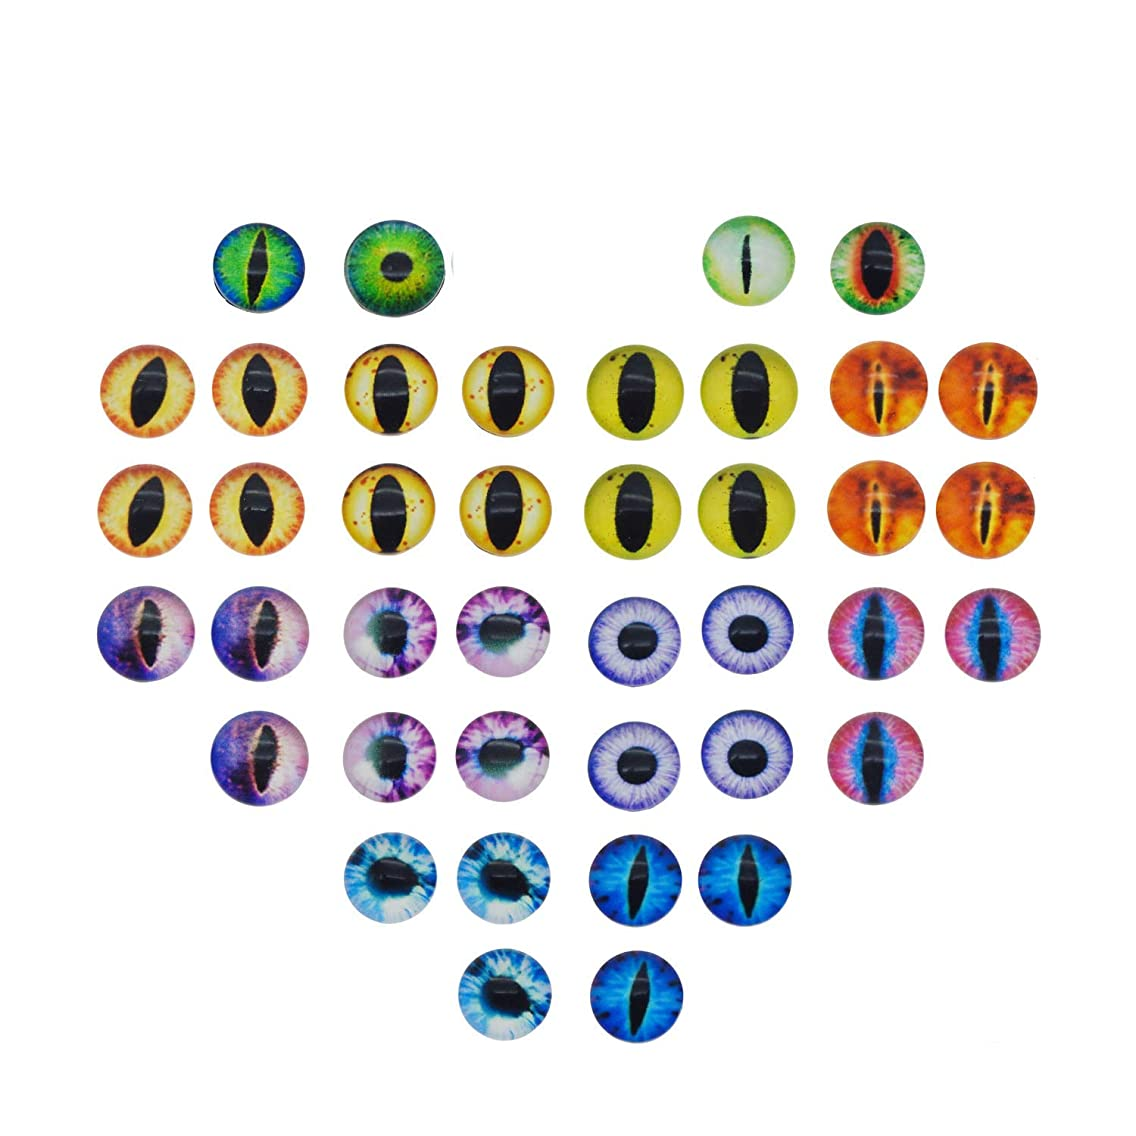 200PCS 8x8MM Round Glass Dragon Cat Eye Cabochon for Doll Animal Eyes Making Or Jewelry Making